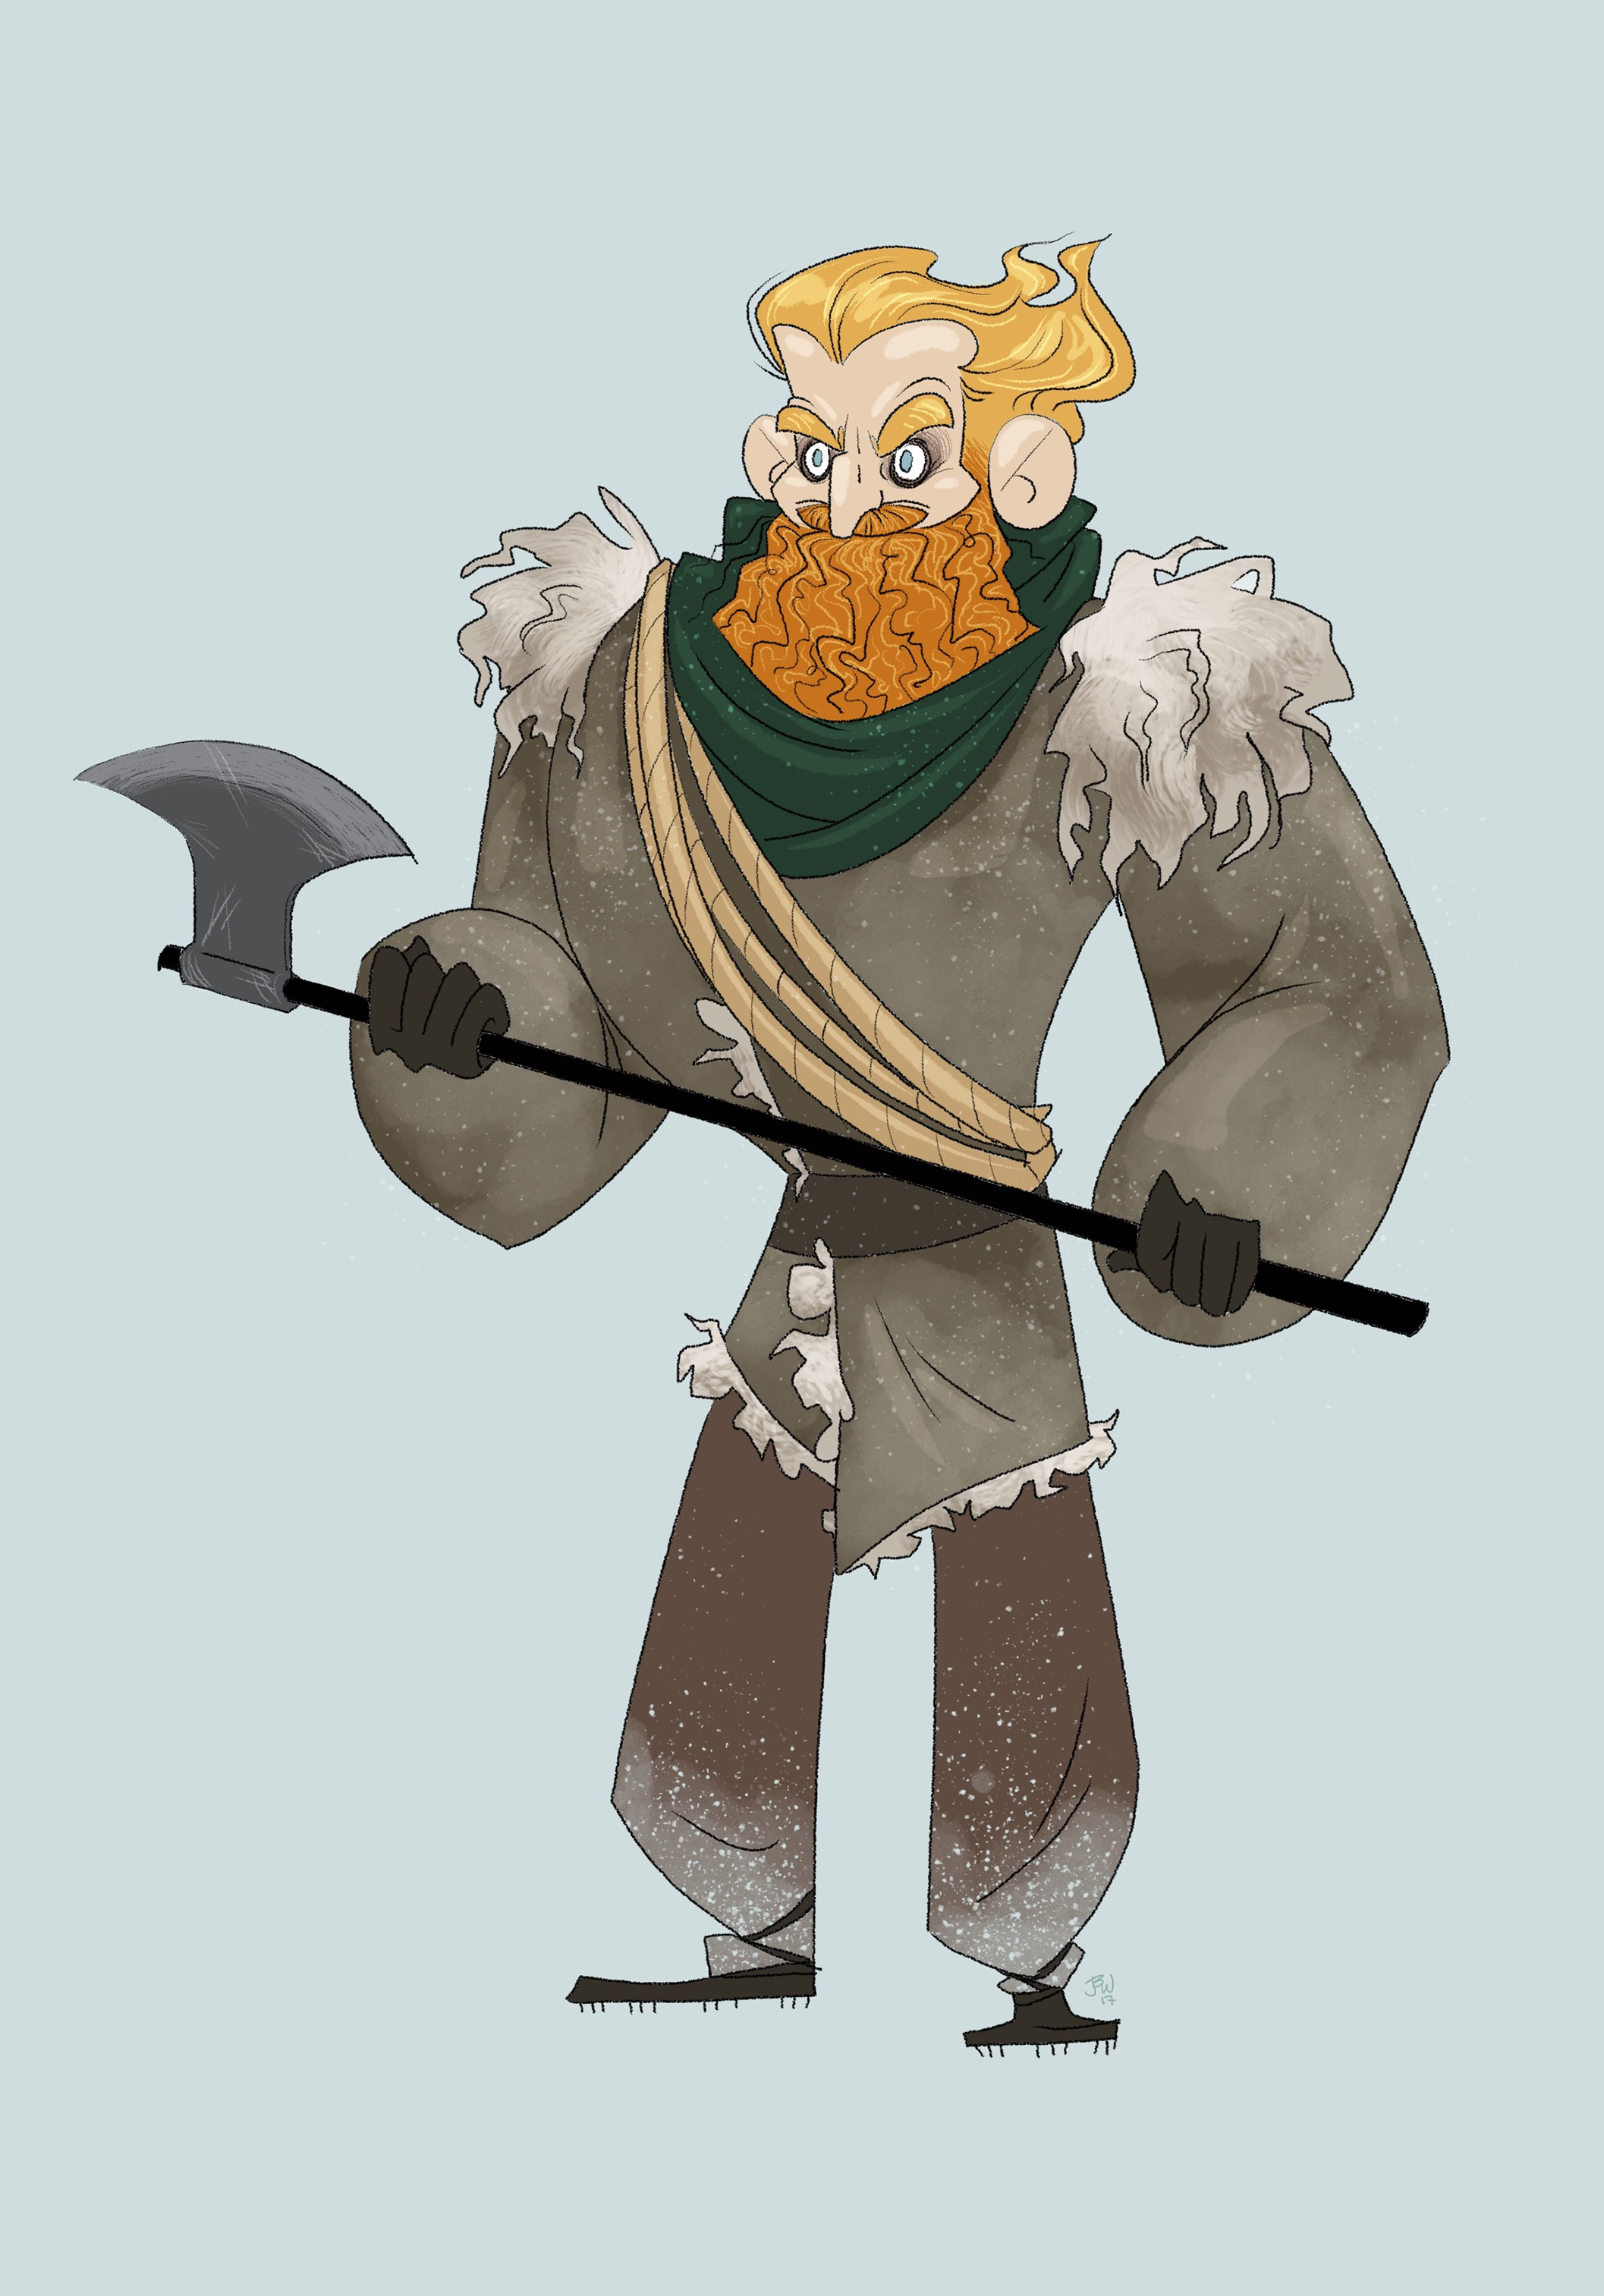 Tormund-Giantsbane02.jpg